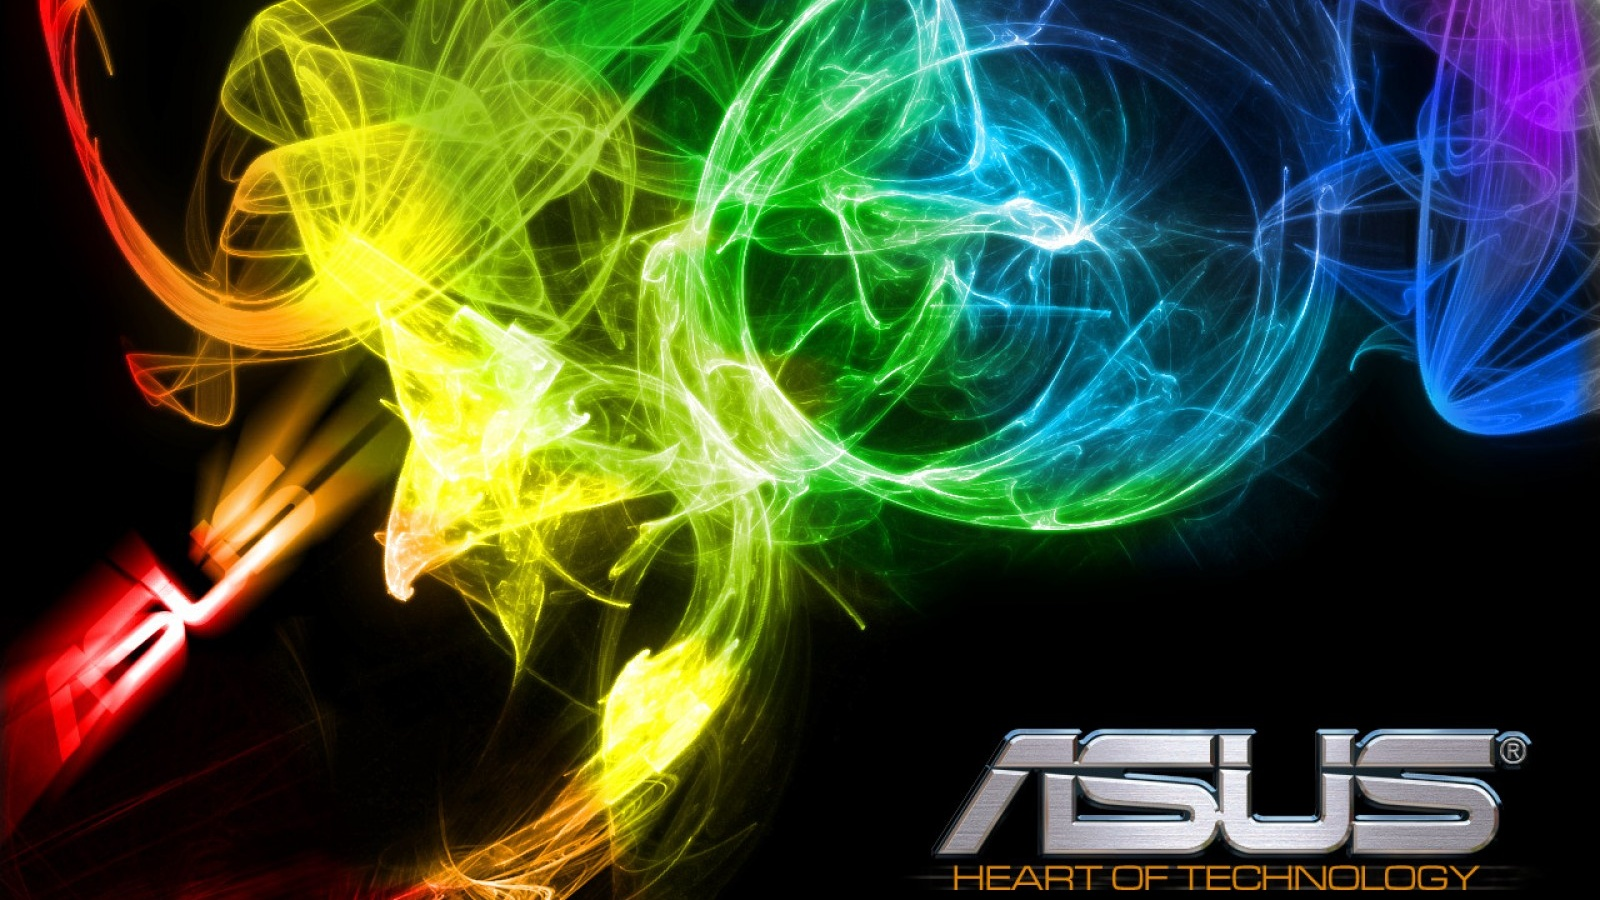 wallpaper asus abstract background 1600x1200 hd picture, image